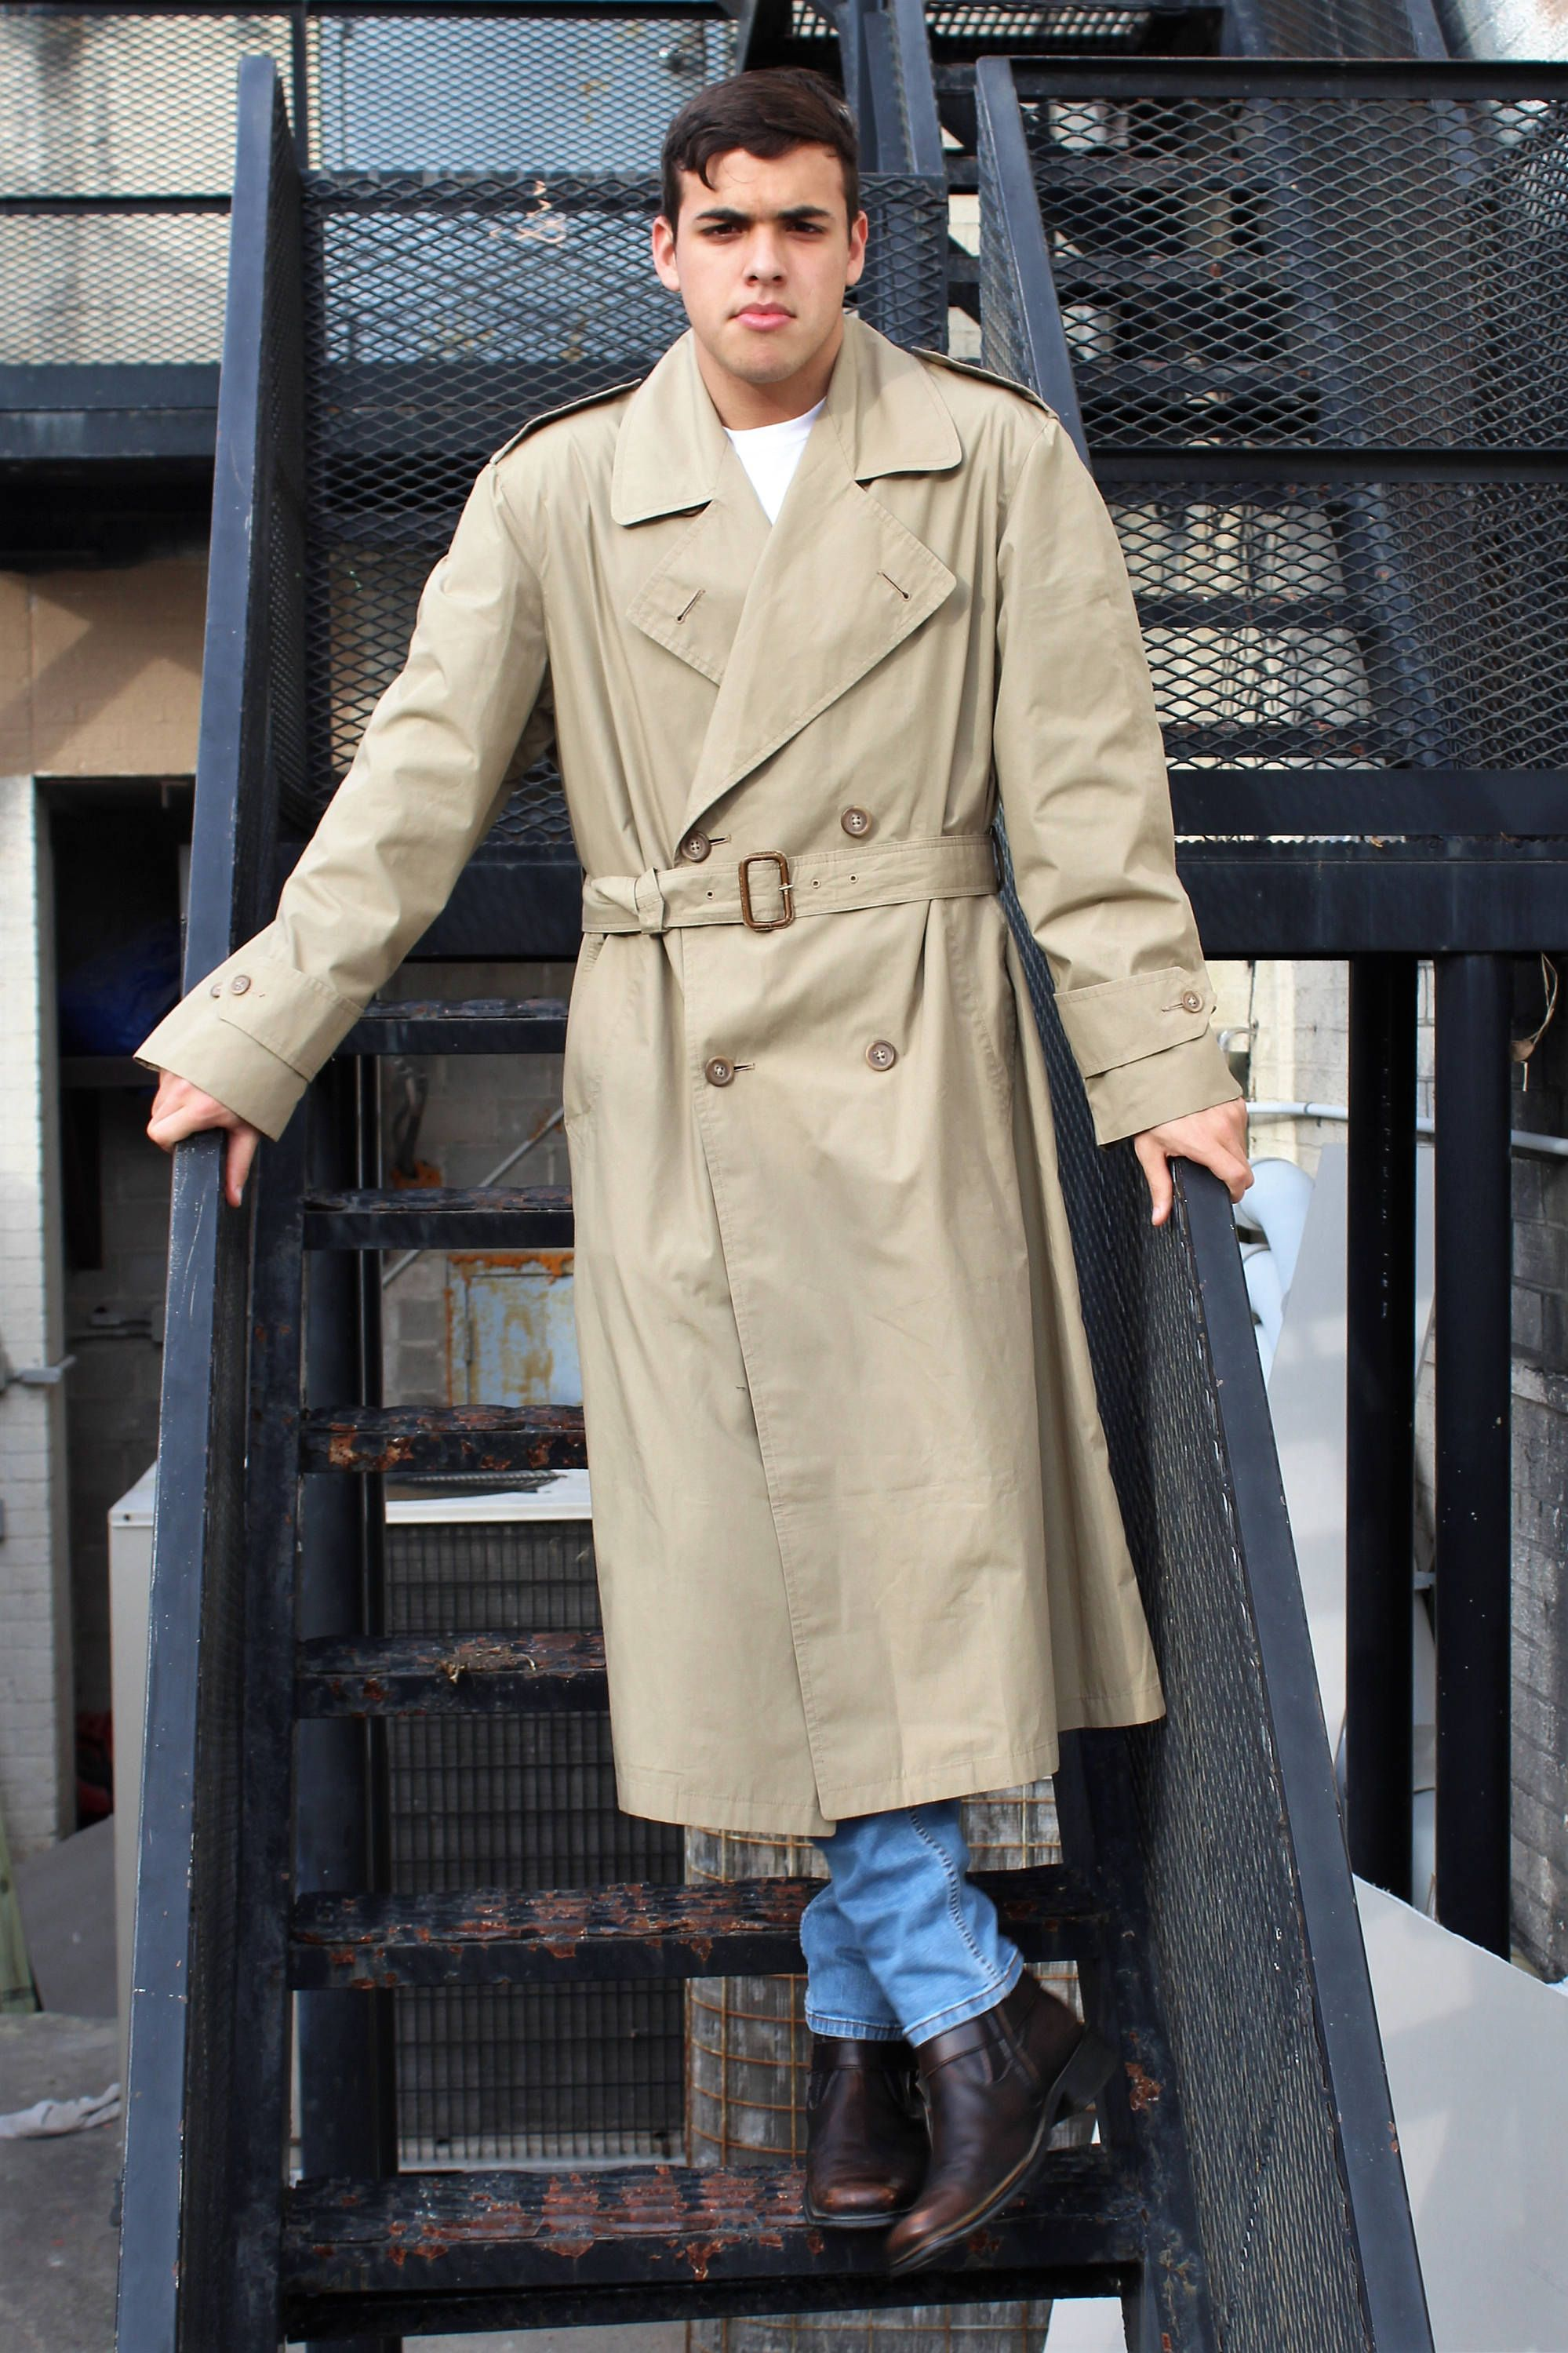 1de88a7967dc Vintage mens trench coat from Christian Dior: Trench Coat Men | Christian  Dior, 40R